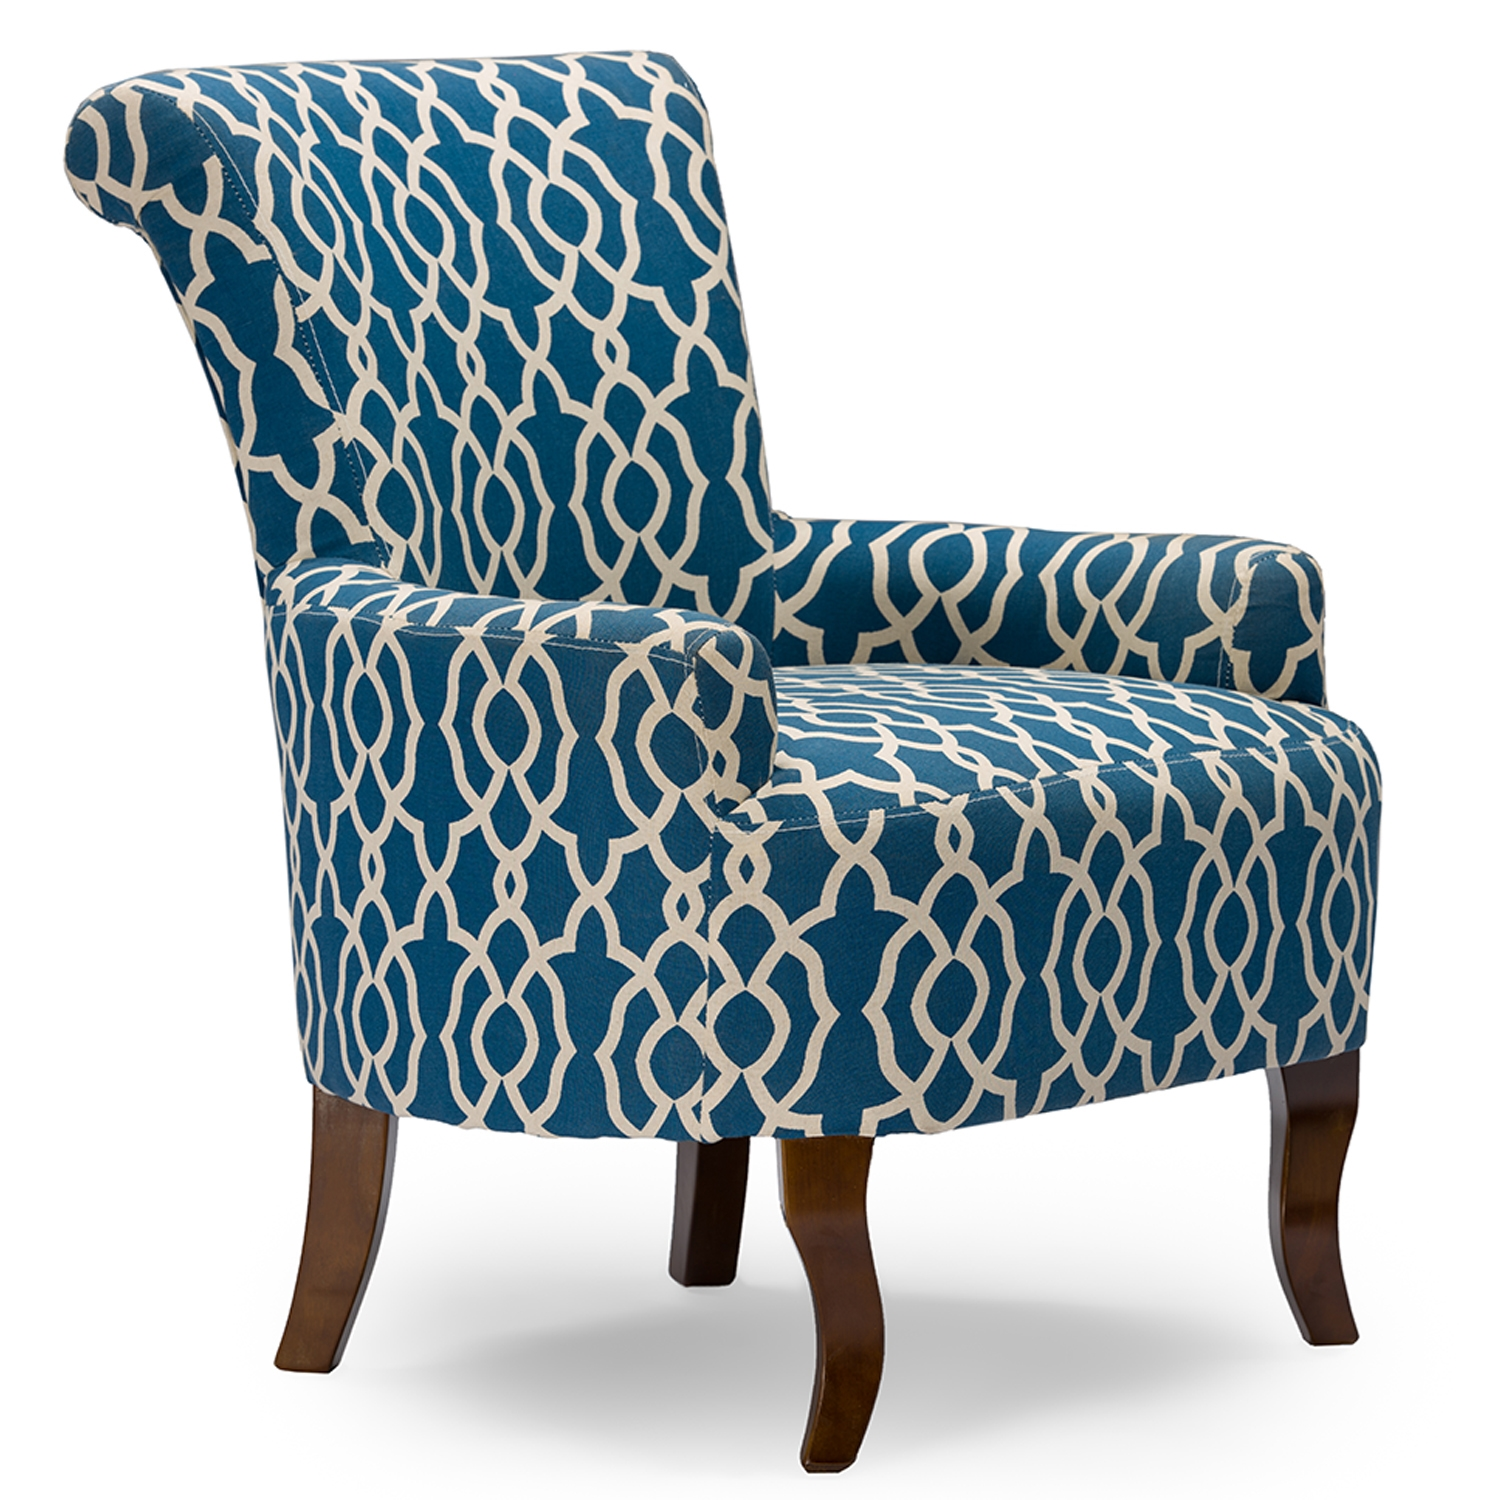 ... Baxton Studio Dixie Contemporary Fabric Armchair   Navy Blue Patterned  Fabric   IEDO 6287 ...